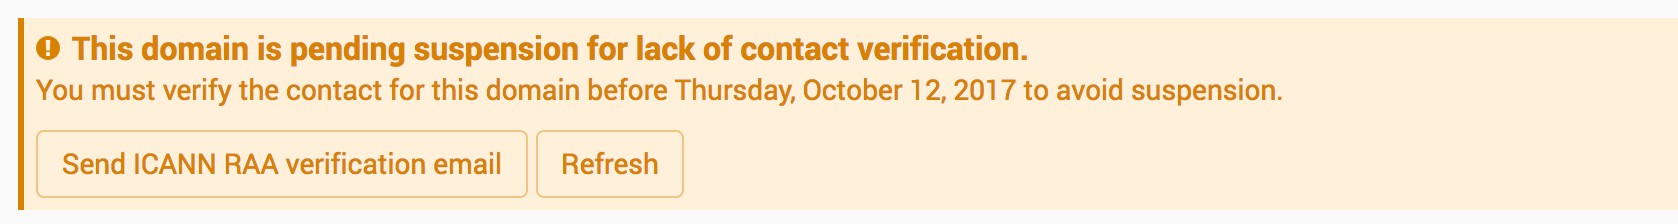 ICANN resend email verification